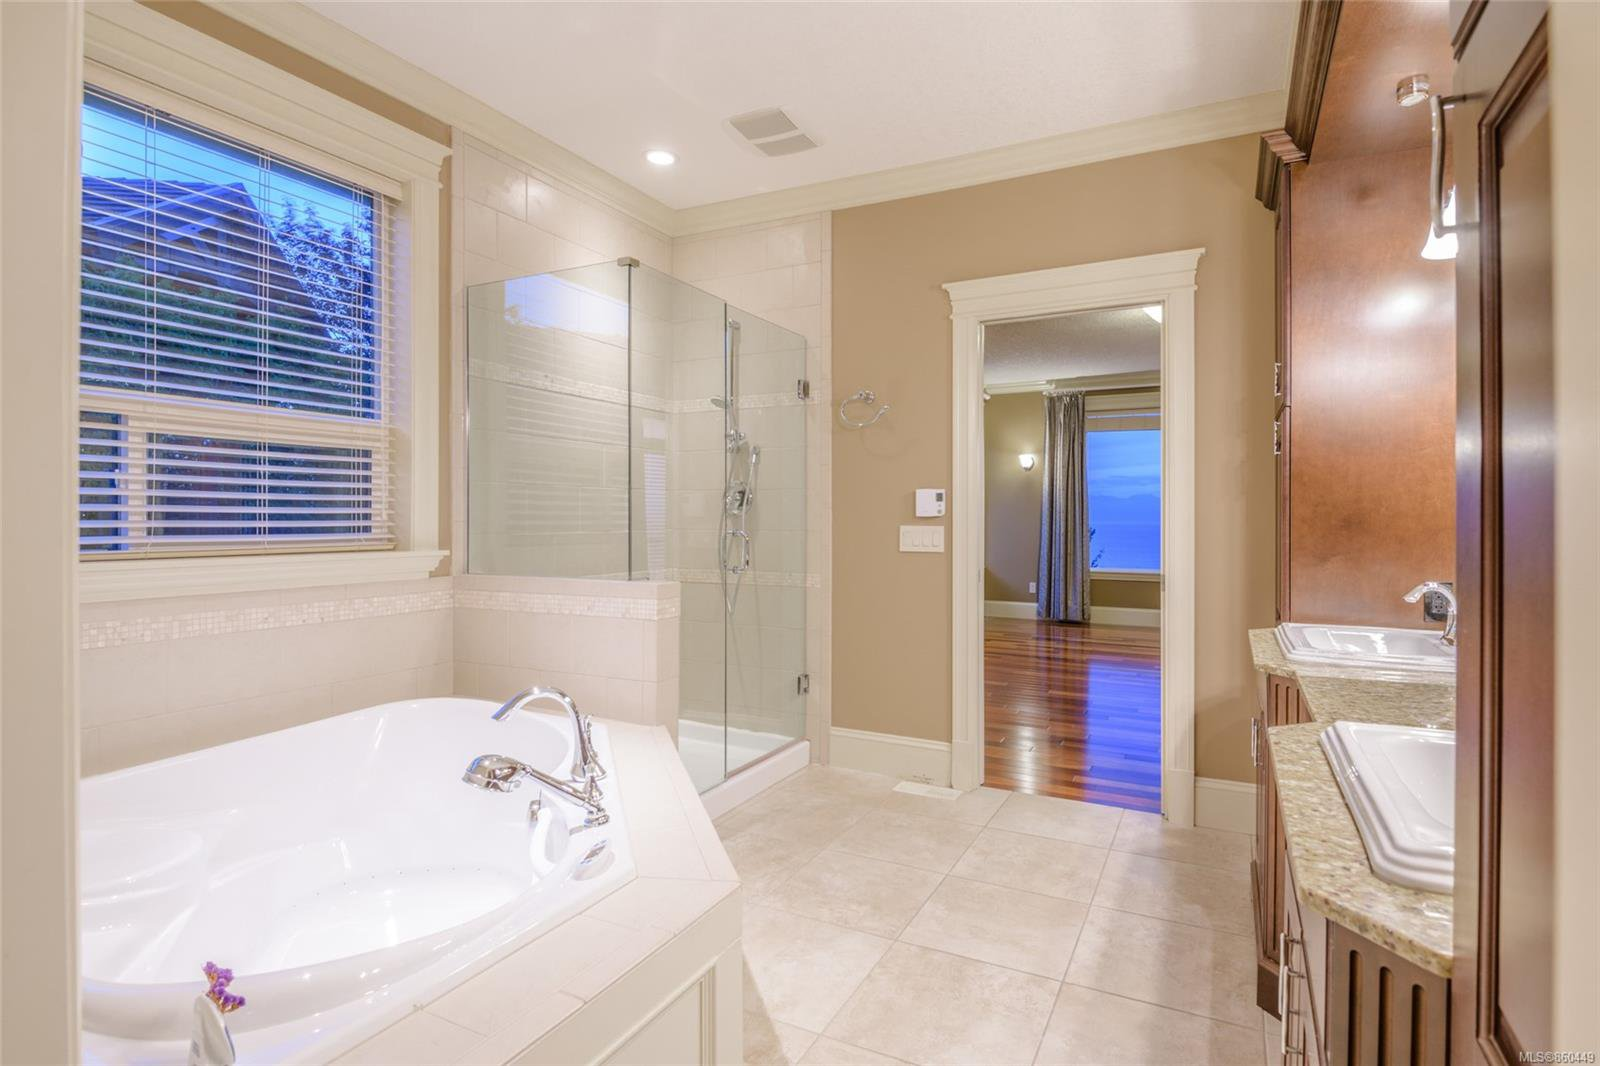 Photo 20: Photos: 5019 Hinrich View in : Na North Nanaimo House for sale (Nanaimo)  : MLS®# 860449